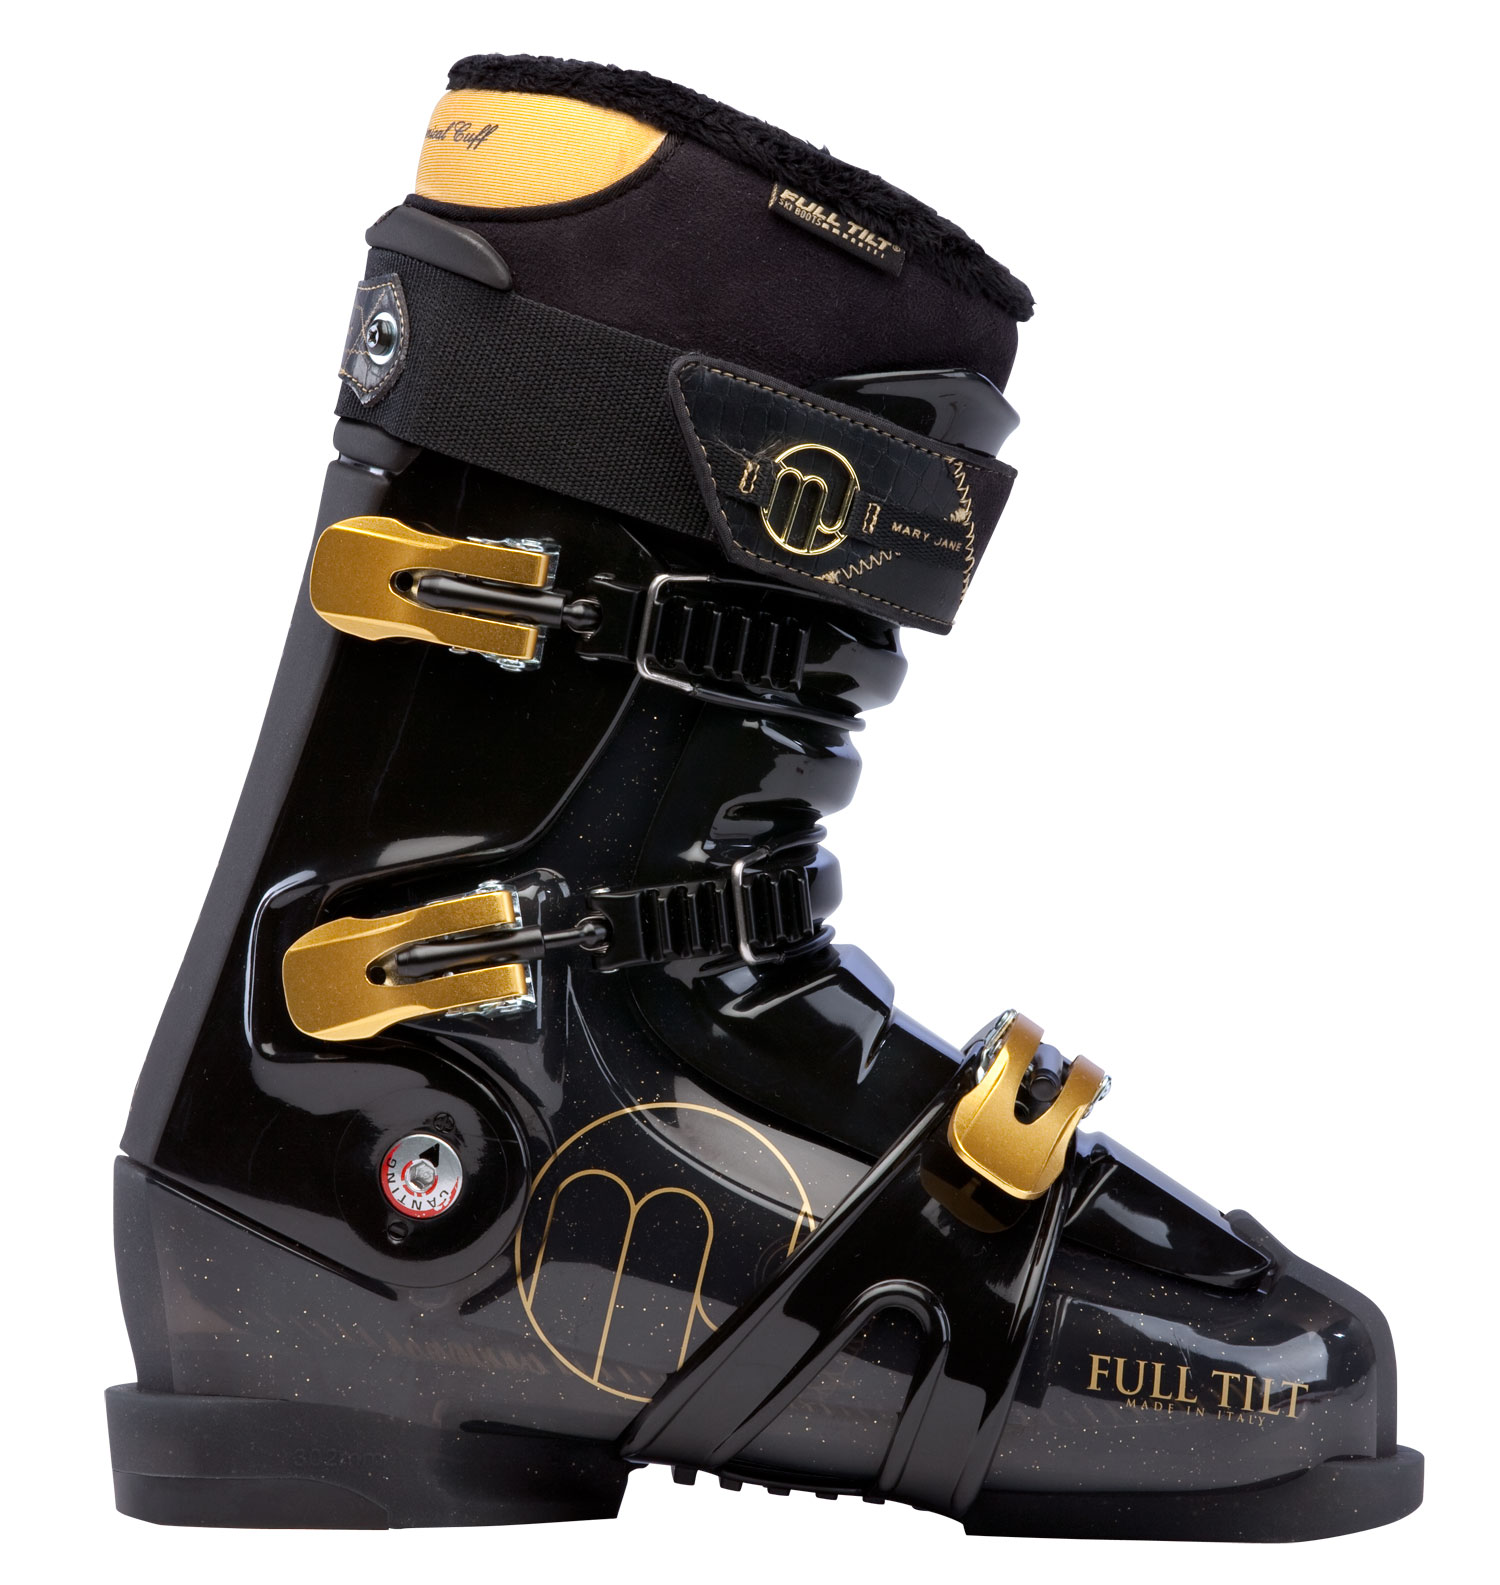 Ski If you are looking for performance and quality manufacturing, then the one of a kind Full Tilt Mary Jane ski boots are the choice for you. The liners are made from specially formulated thermo-forming closed cell EVA foam making these boots among the most comfortable boots on the market today. Feeling is believing. The liner fully molds to your foot for a perfect fit. The Full Tilt Mary Jane's weight, or lack of it, makes for a boot that is easy on the legs and will not tire you out on the first run.Key Features of the Full Tilt Mary Jane Ski Boots:  Shell: FTI Influence  Last Width: 102mm Women's Fit  Tongue (10 = Stiffest Flex : Interchangeable  4 Flex/ 5 Ribs  Weight g (sizes M 27, W 25 : 1748  Foot Board: Active  Sole: Replaceable Rubber  Small Heel  Buckles: 3 Aluminum   Macro Ladder Micro  Closure System: 2 Upper Cables  1 Lower Wrap Strap  Forward Cant Adjustment: n/a  Lateral Cant Adjustment: 3mm  Toe/ Heal Height: 18.5mm/ 34mm  Cuff: Free Hinging  Women's Fit  Quickfit Liner Model: WOMEN'S PLUSH  Open Cell Foam: 8mm  Soft Density Intuition Foam: 2mm  Regular Density Intuition Foam: 7mm  Moldable Foam: Intuition  Wide Toe: Wide Toe - $179.95